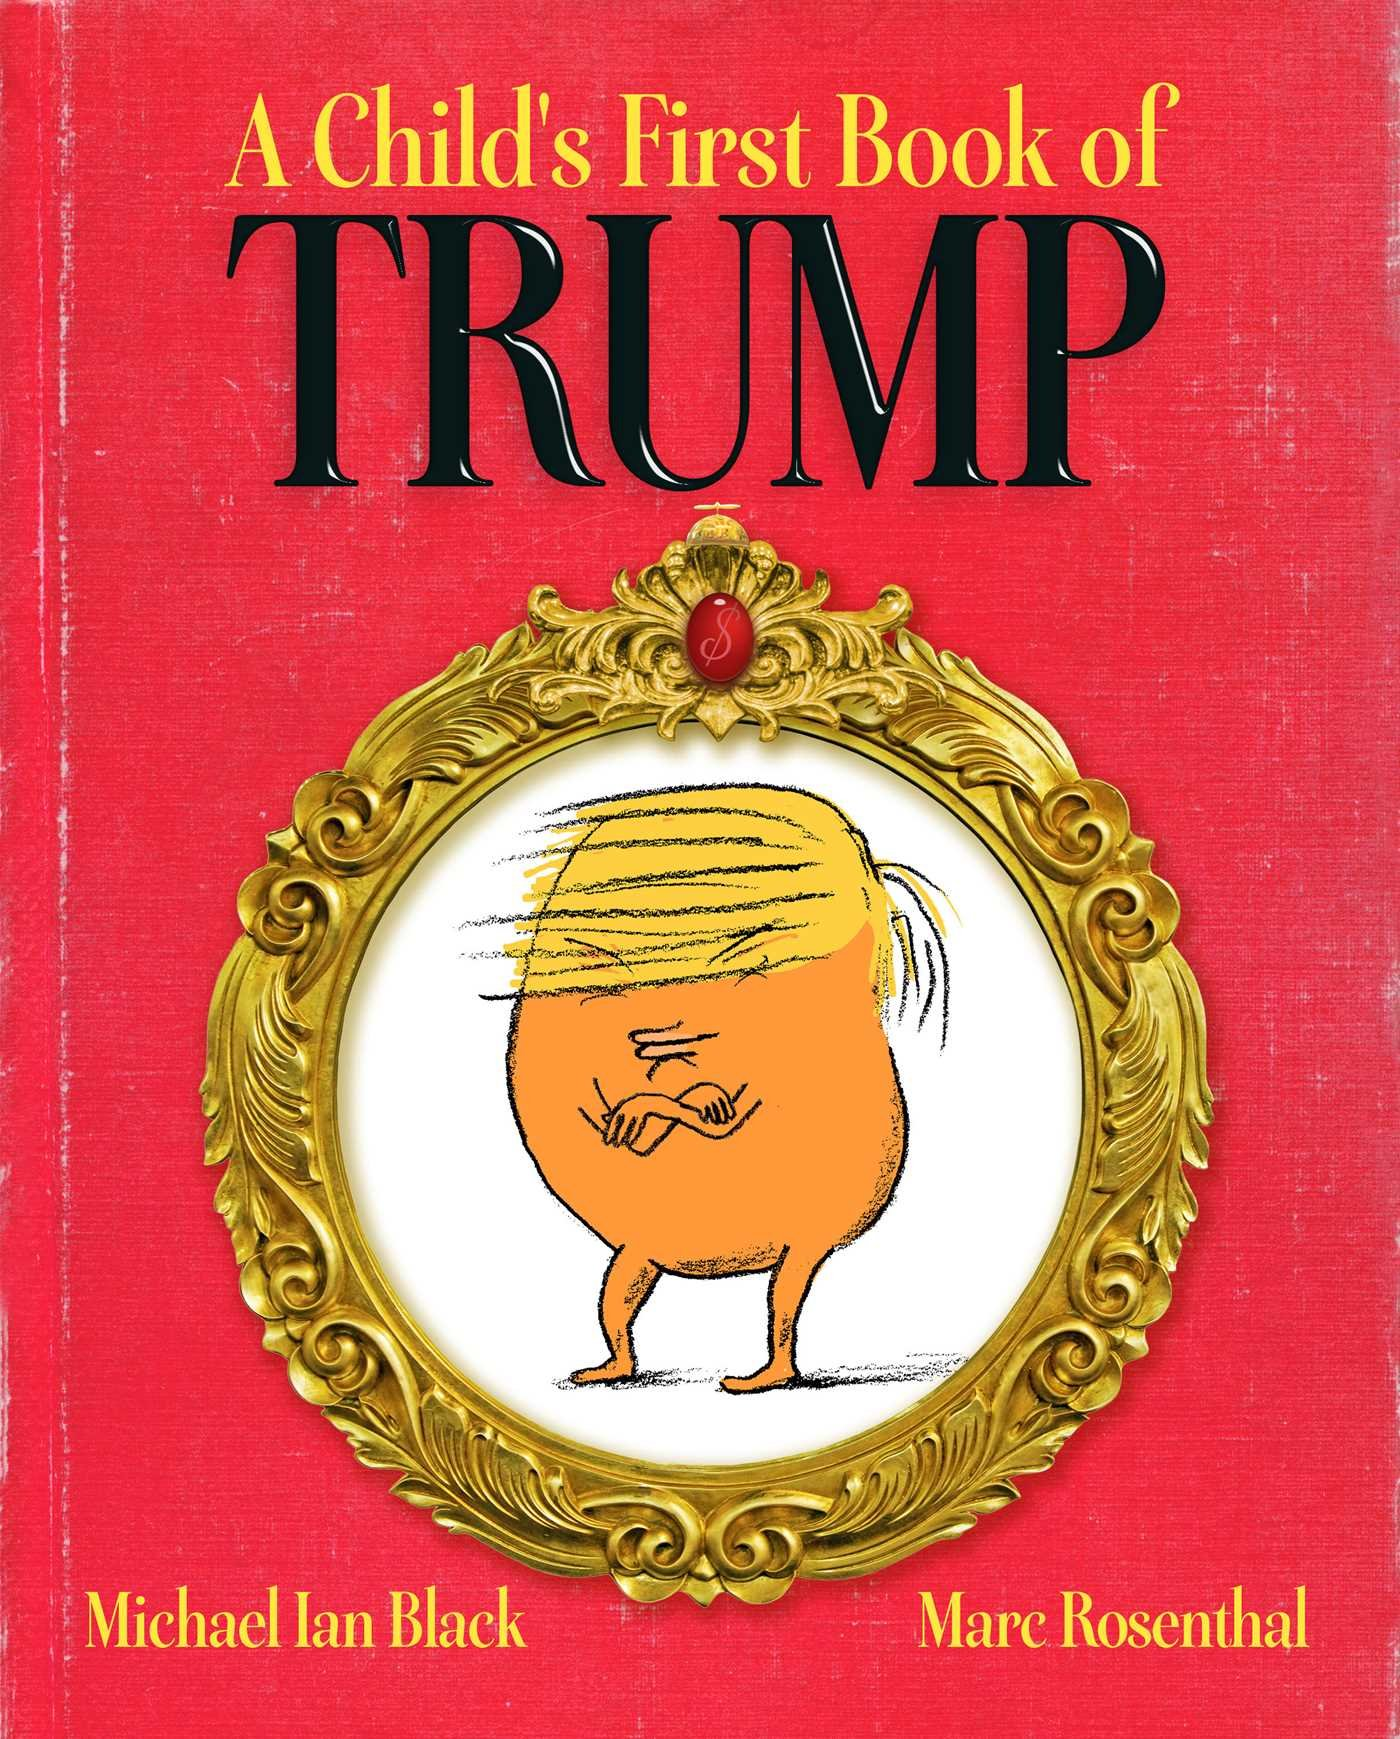 a childs first book of trump michael ian black marc rosenthal 0884890080799 amazoncom books